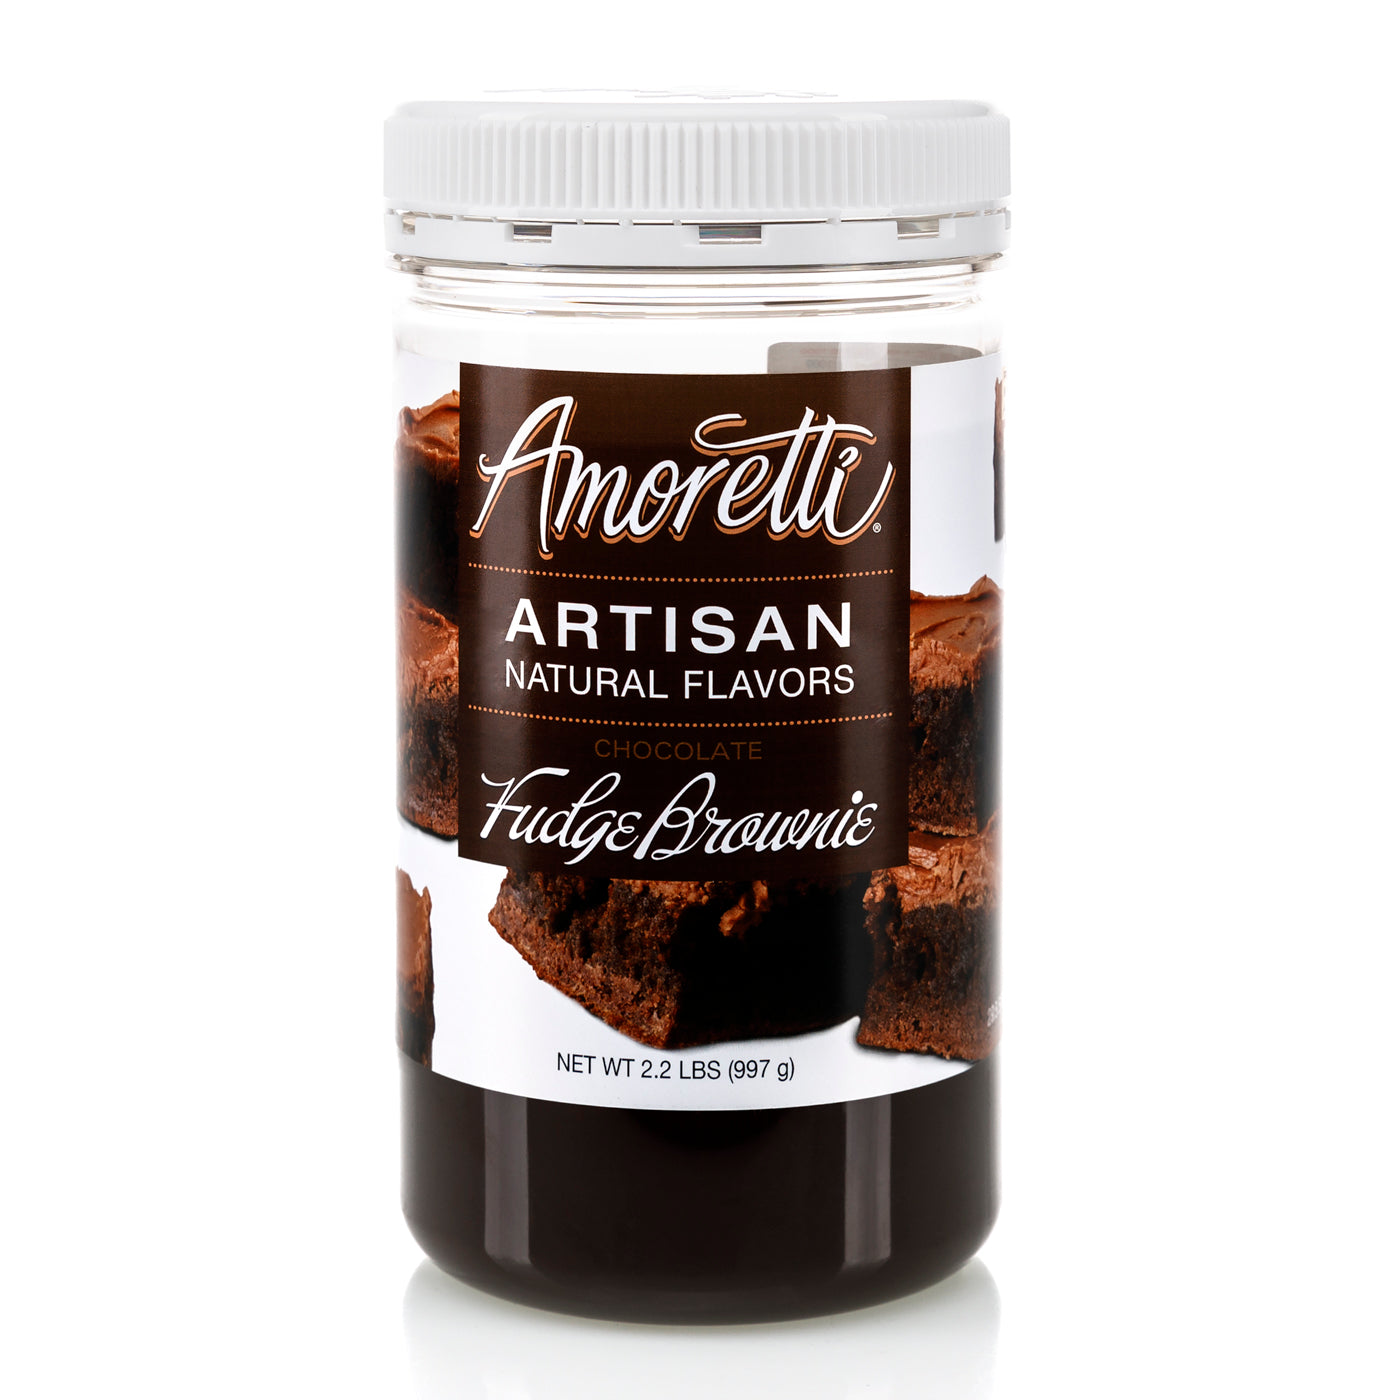 Natural Chocolate Fudge Brownie Artisan Flavor